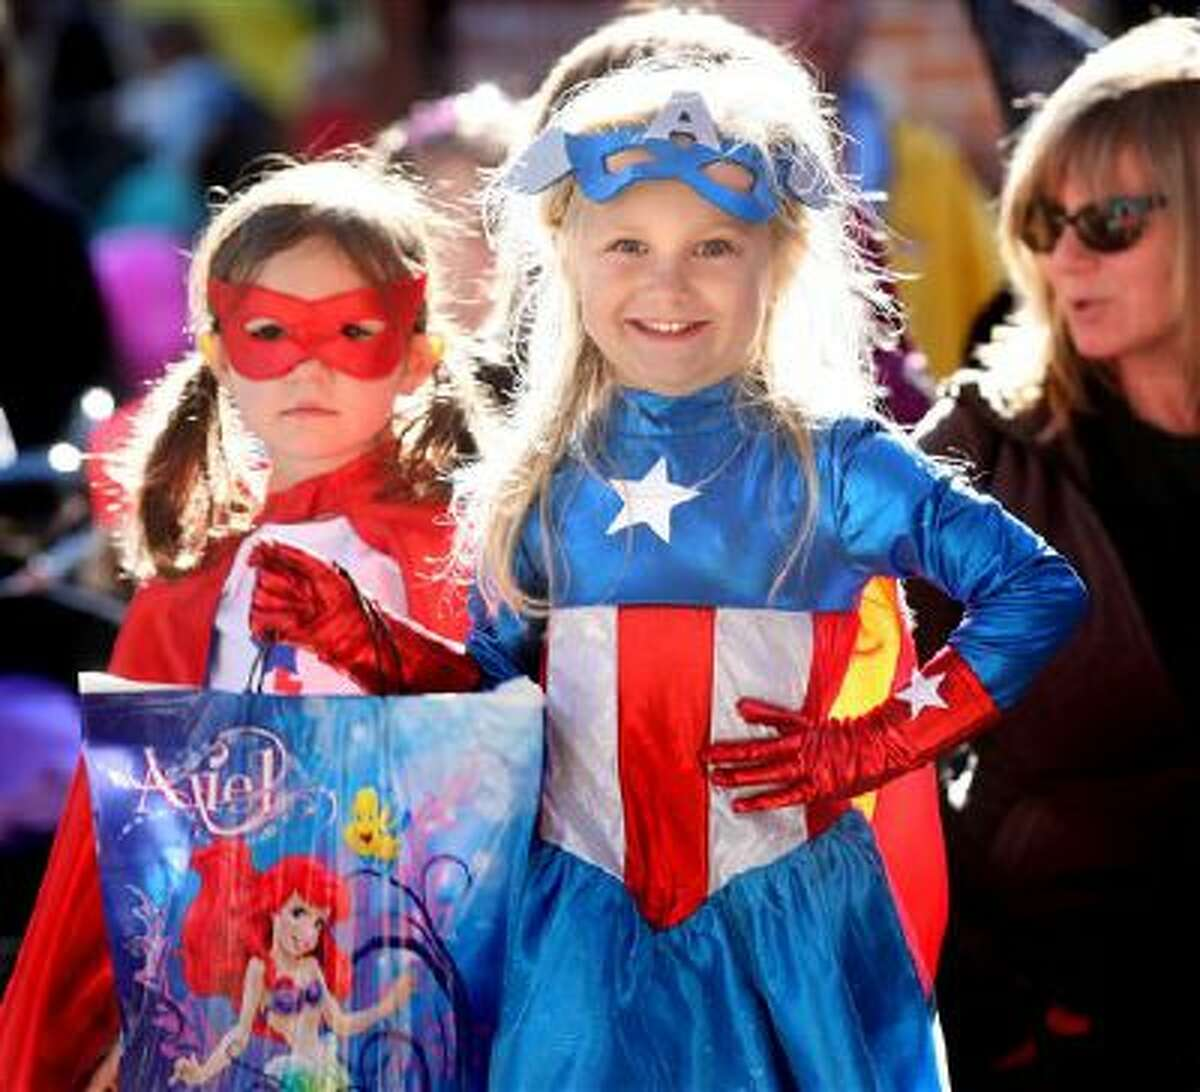 Captain America Zoey Creswell, 4, and her superhero/princess cousin Kambree Caton, 3, both of Winchester, Va., participate in the Old Town Spooktacular event where store owners give candy to trick-or-treaters. (AP Photo, The Winchester Star, Jeff Taylor)